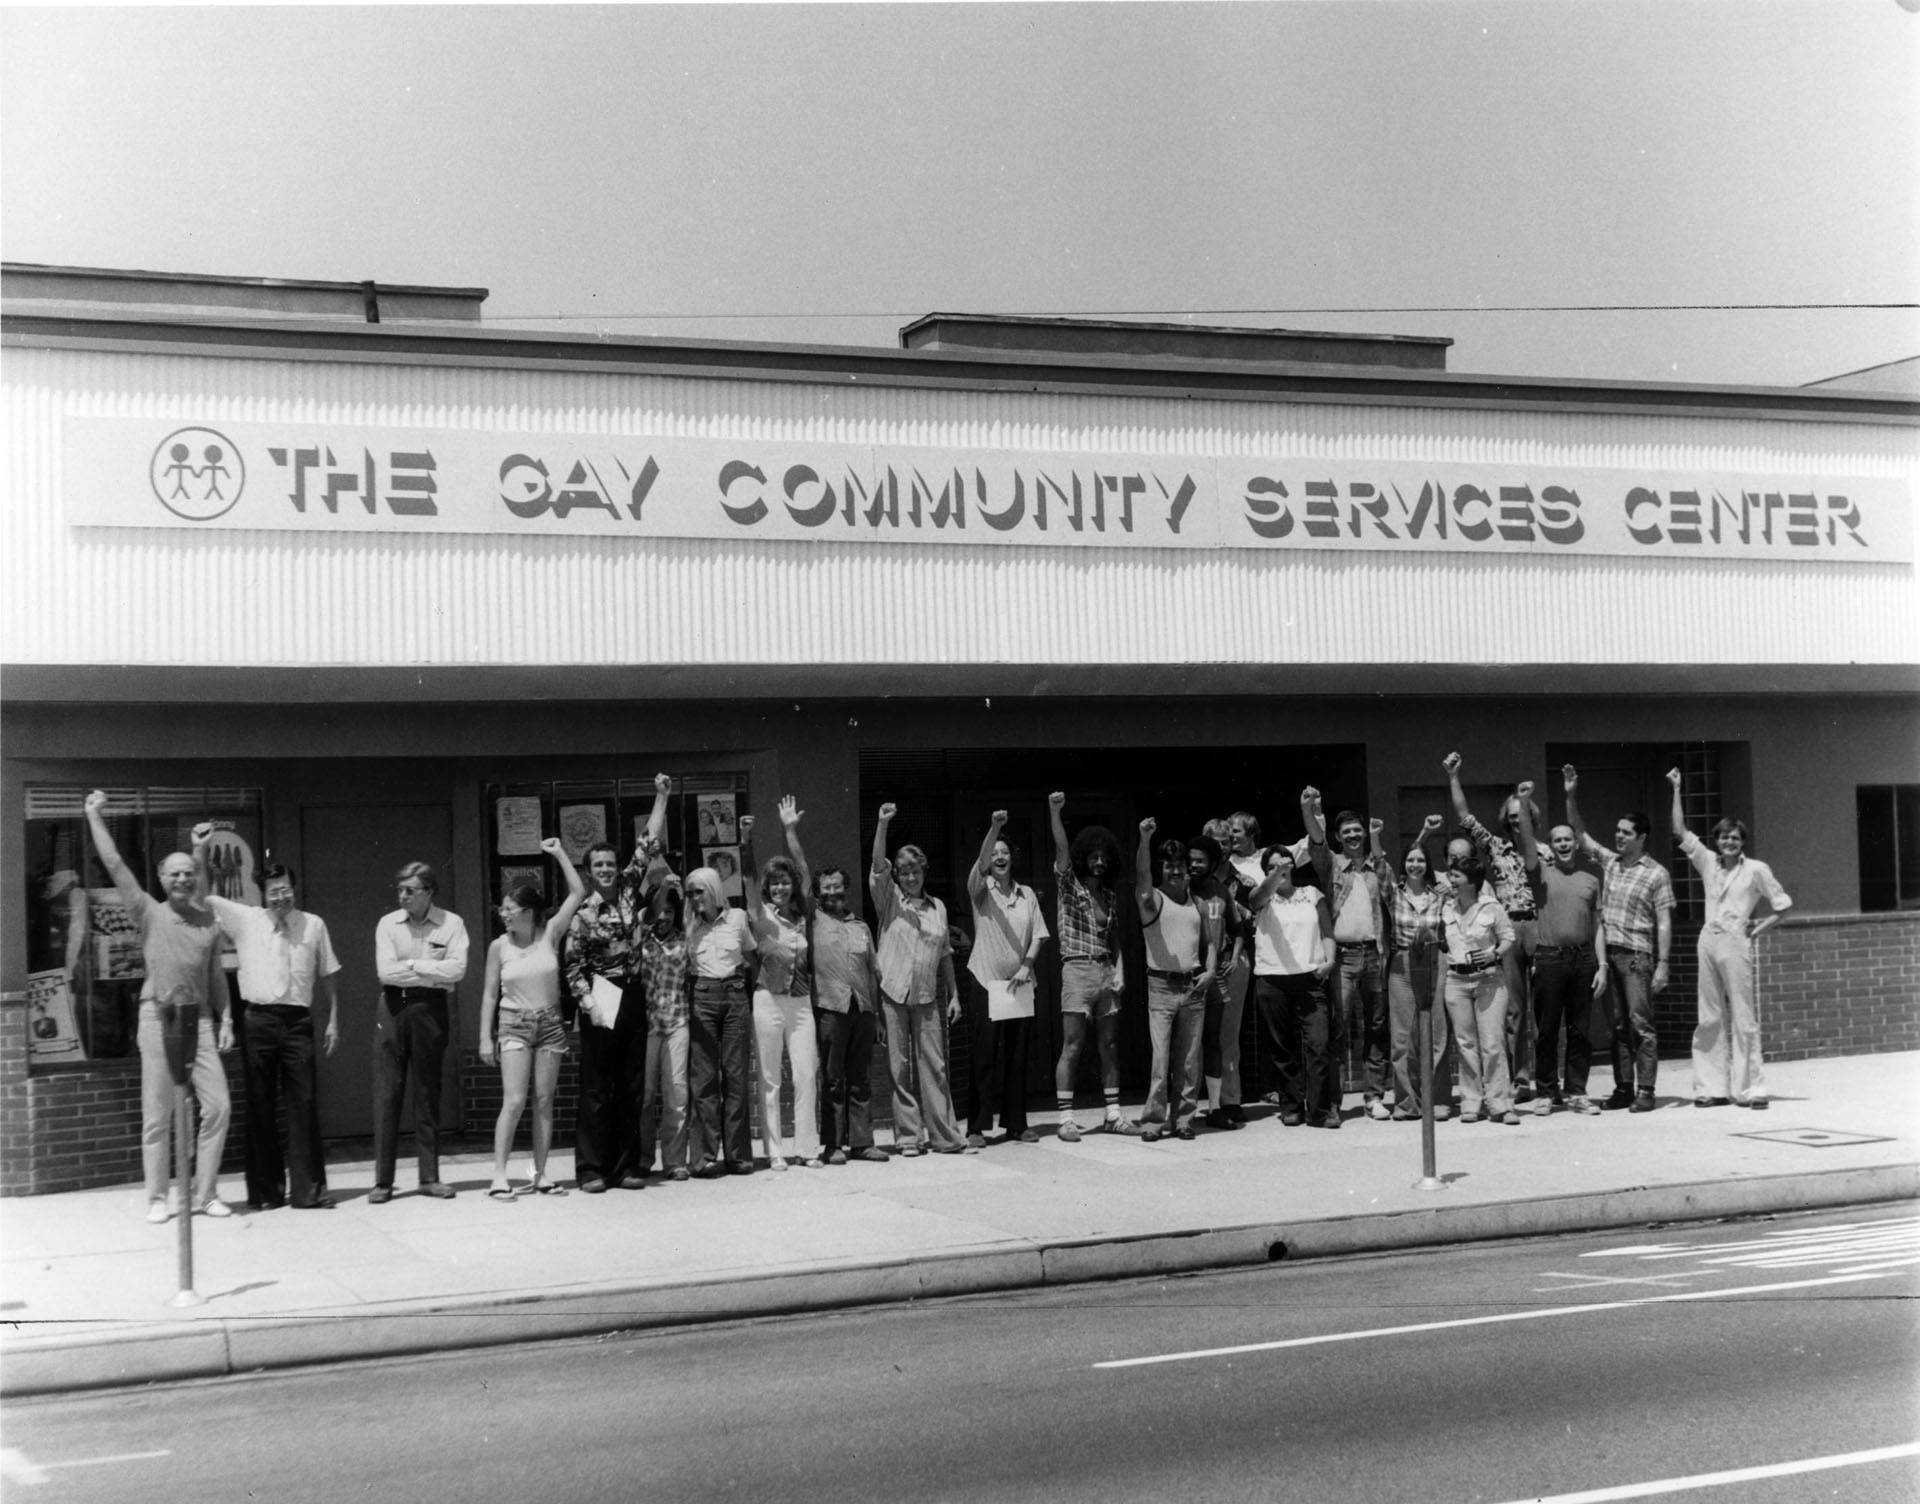 Two dozen supporters stand in front of the Gay Community Services Center, circa 1974